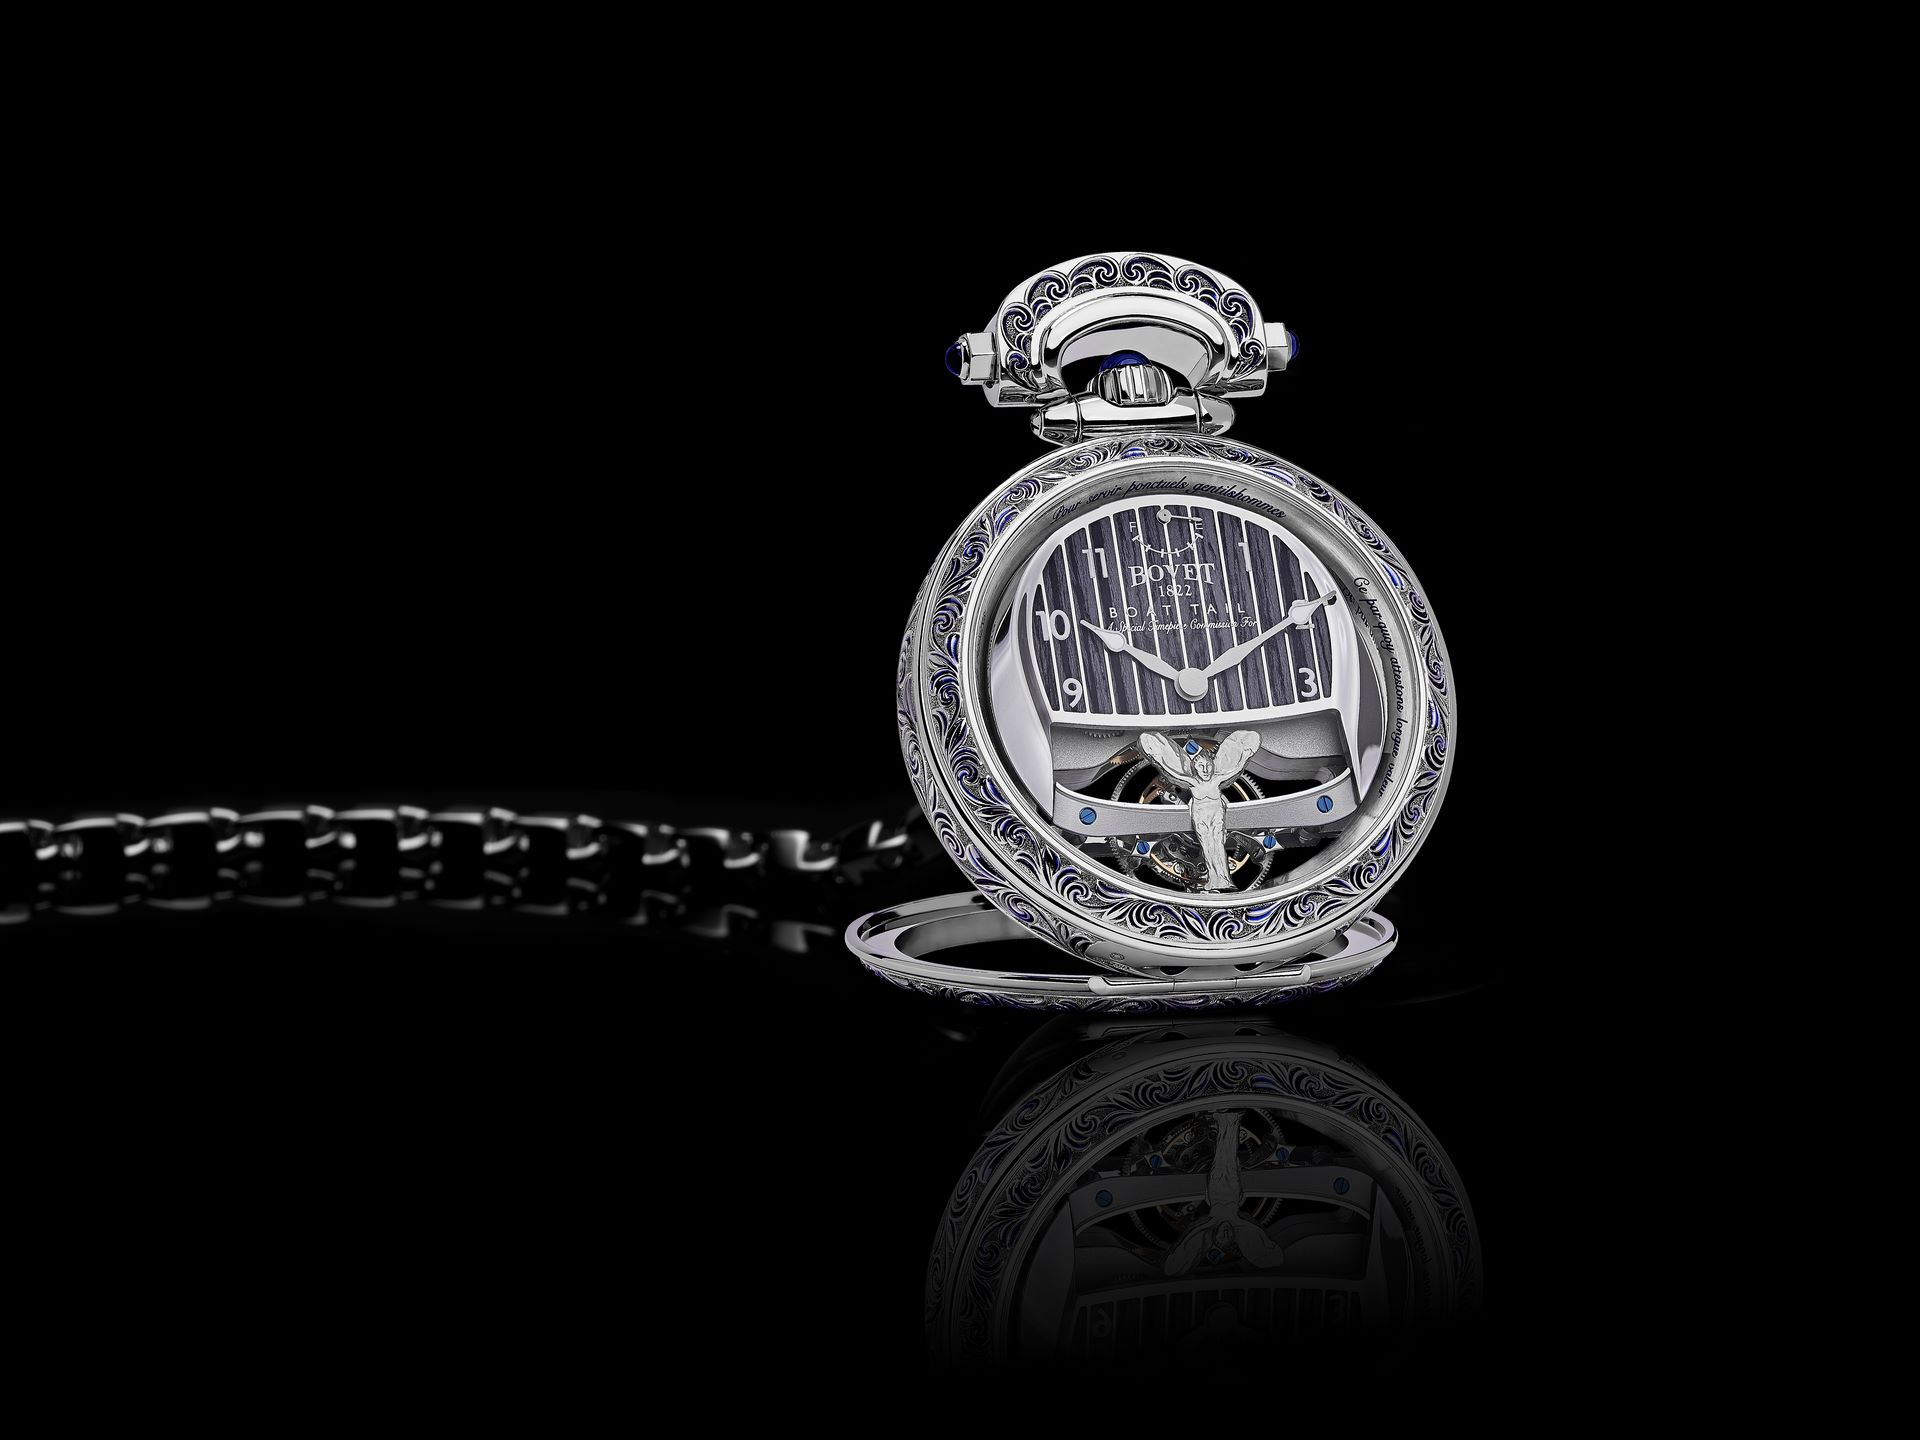 Rolls-Royce-Boat-Tail-Bovet-1822-Watches-6